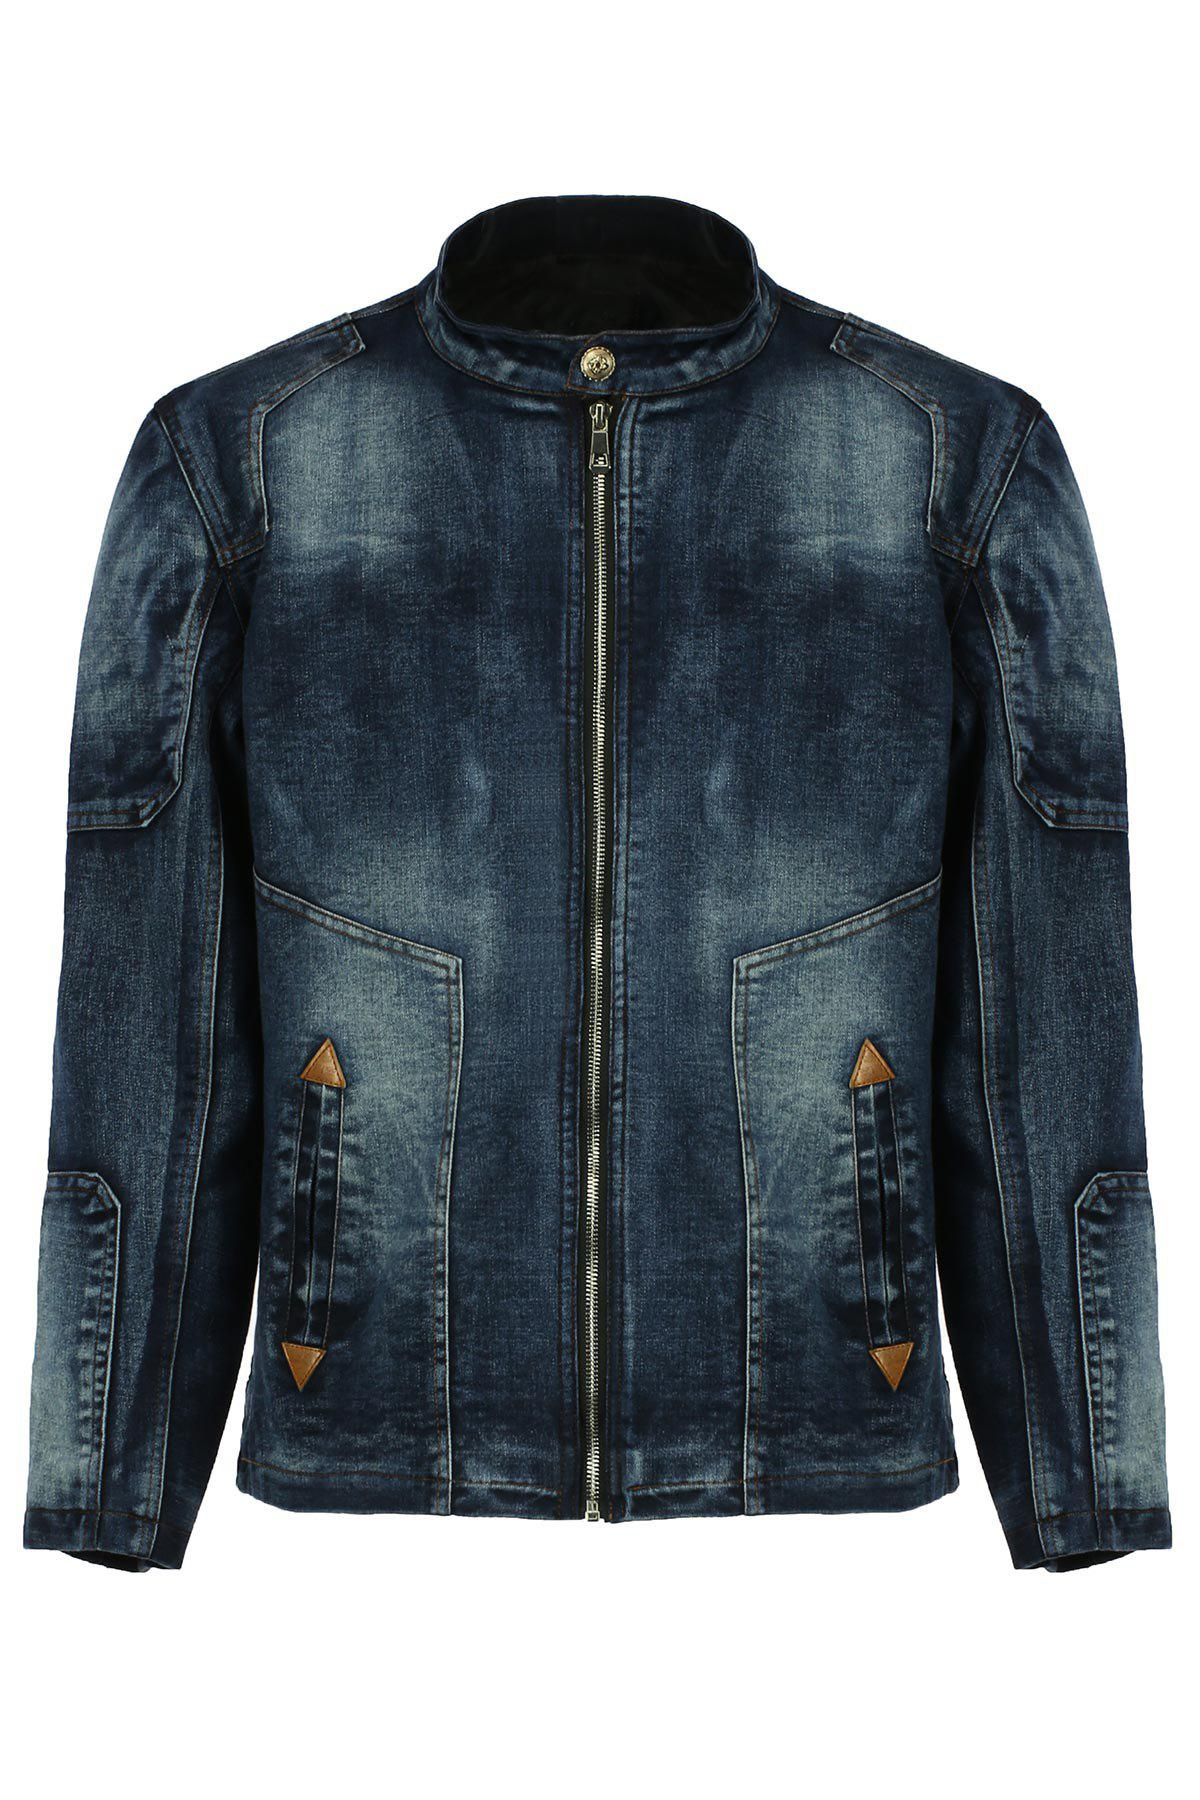 PU Leather Embellished Stand Collar Long Sleeves Men's Ombre Denim Jacket - BLUE 2XL